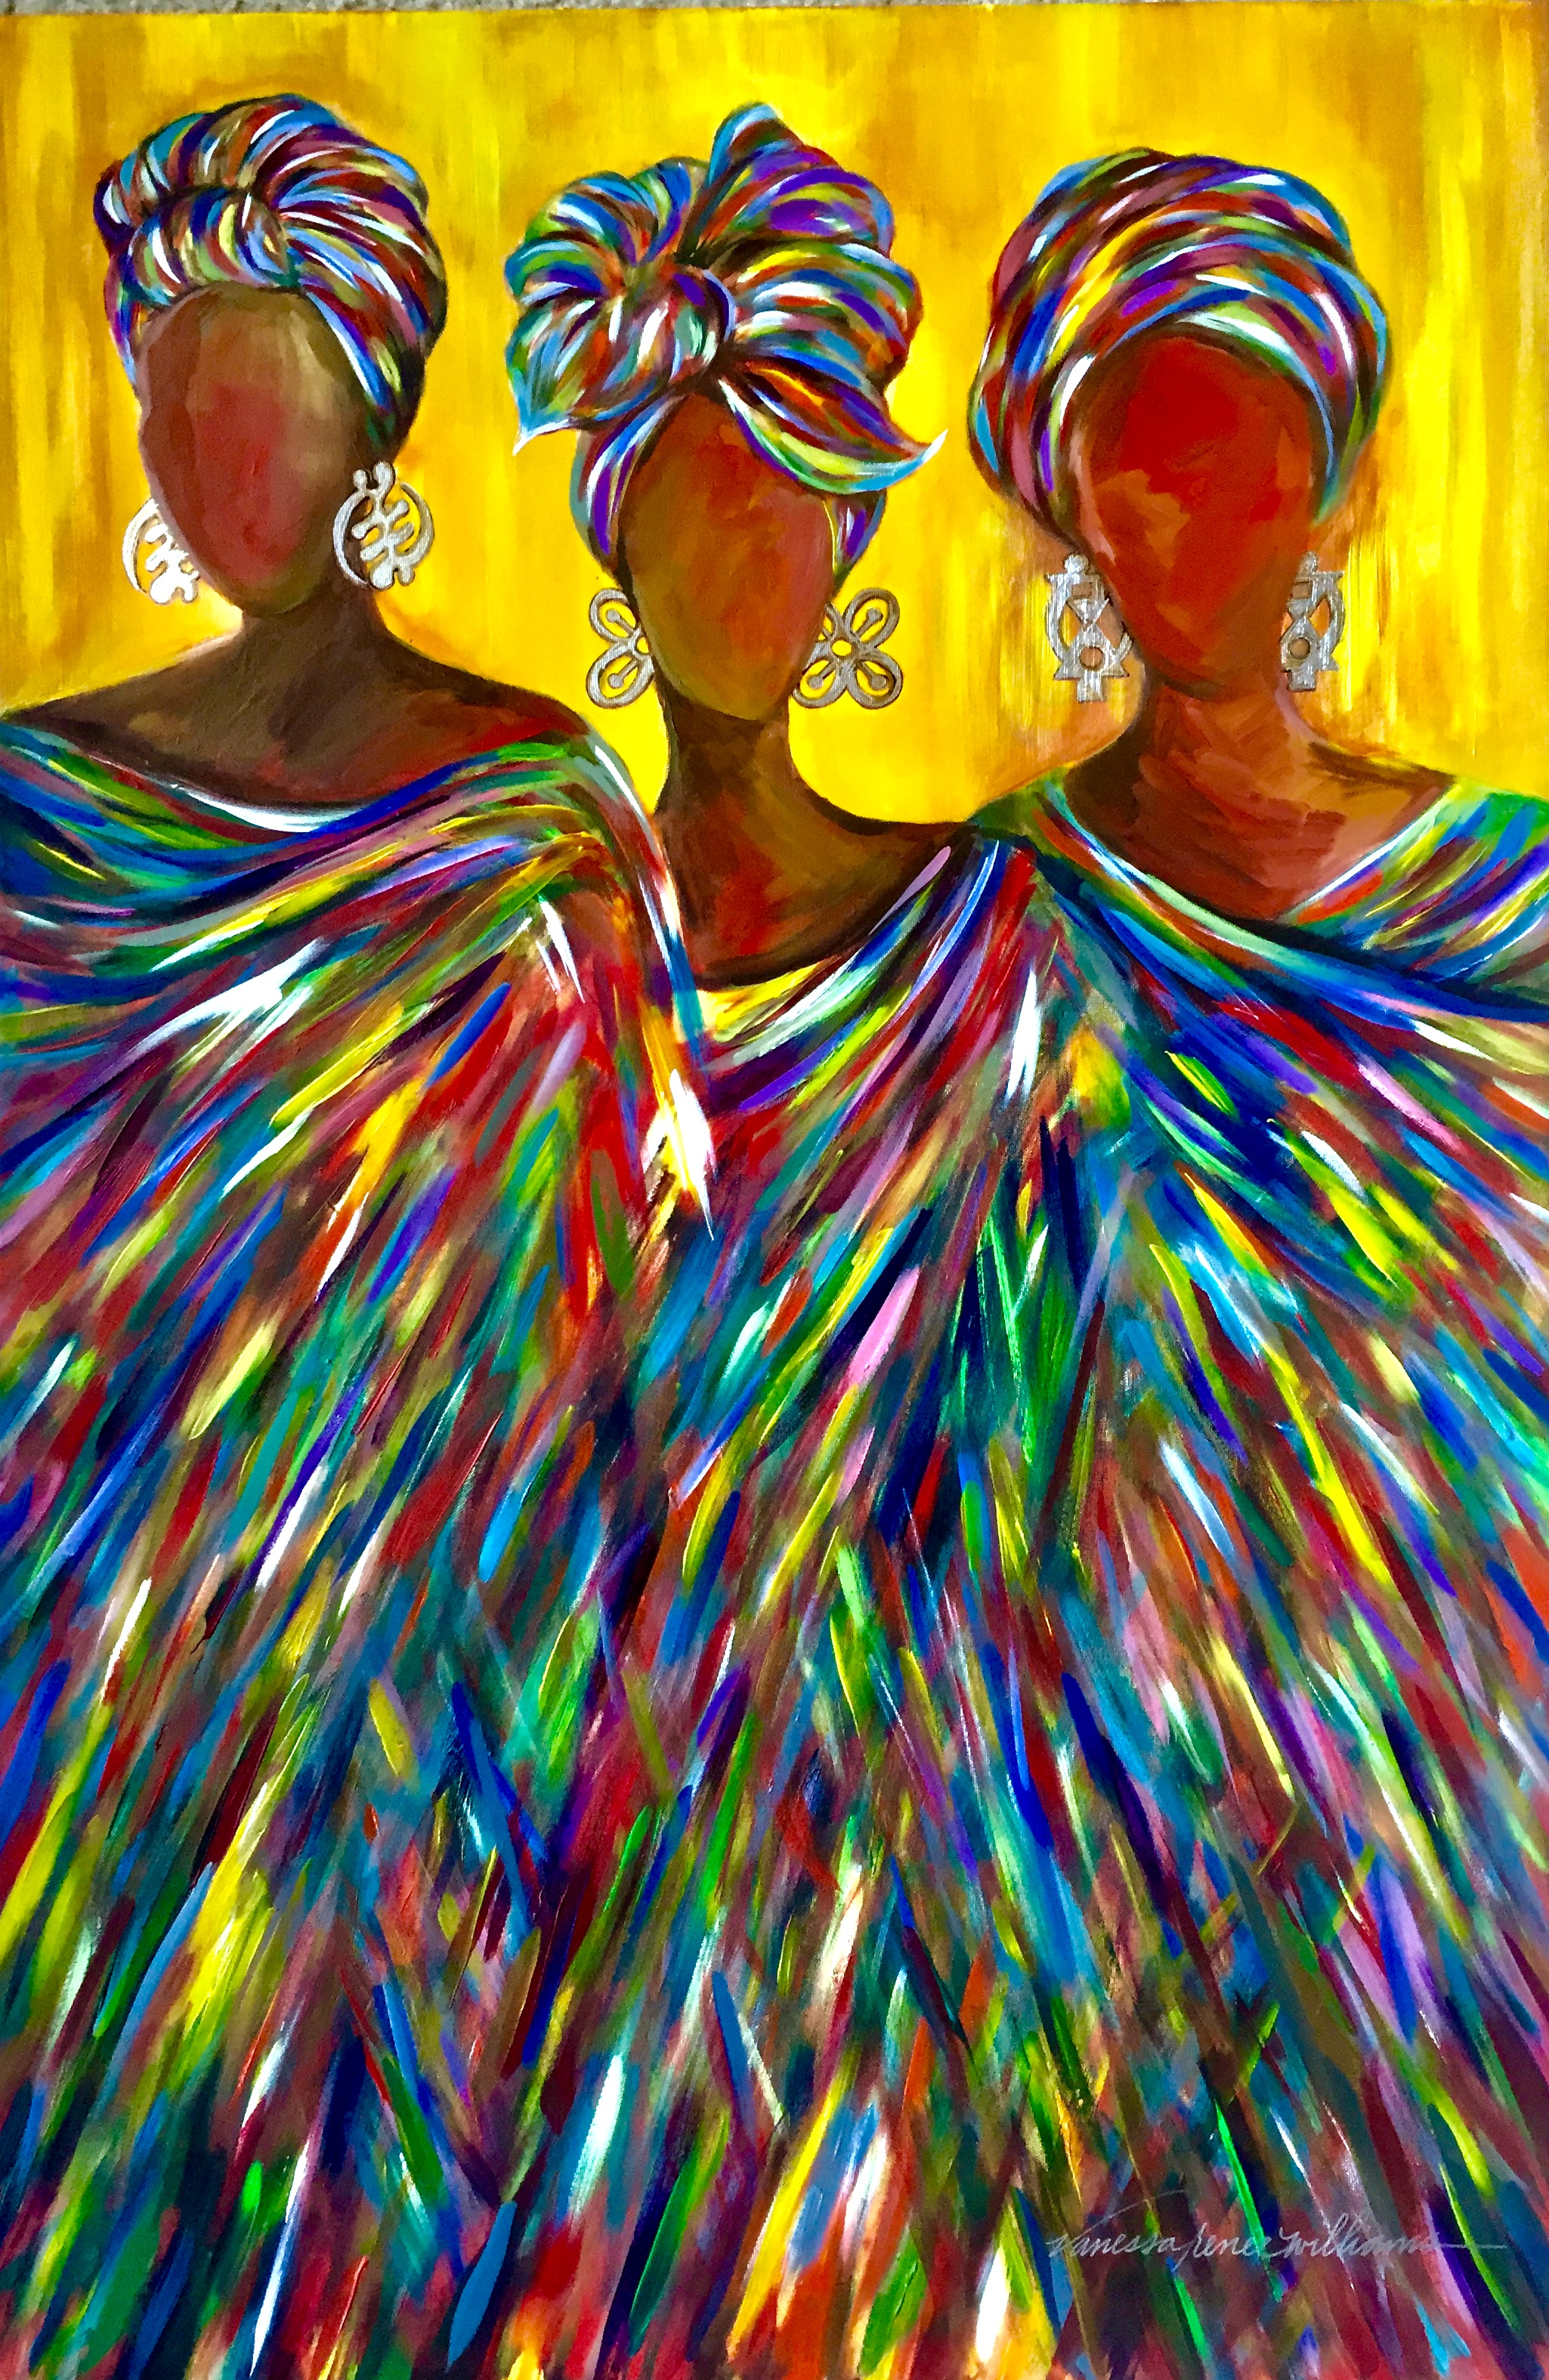 The Women, a painting by Vanessa Renee Williams